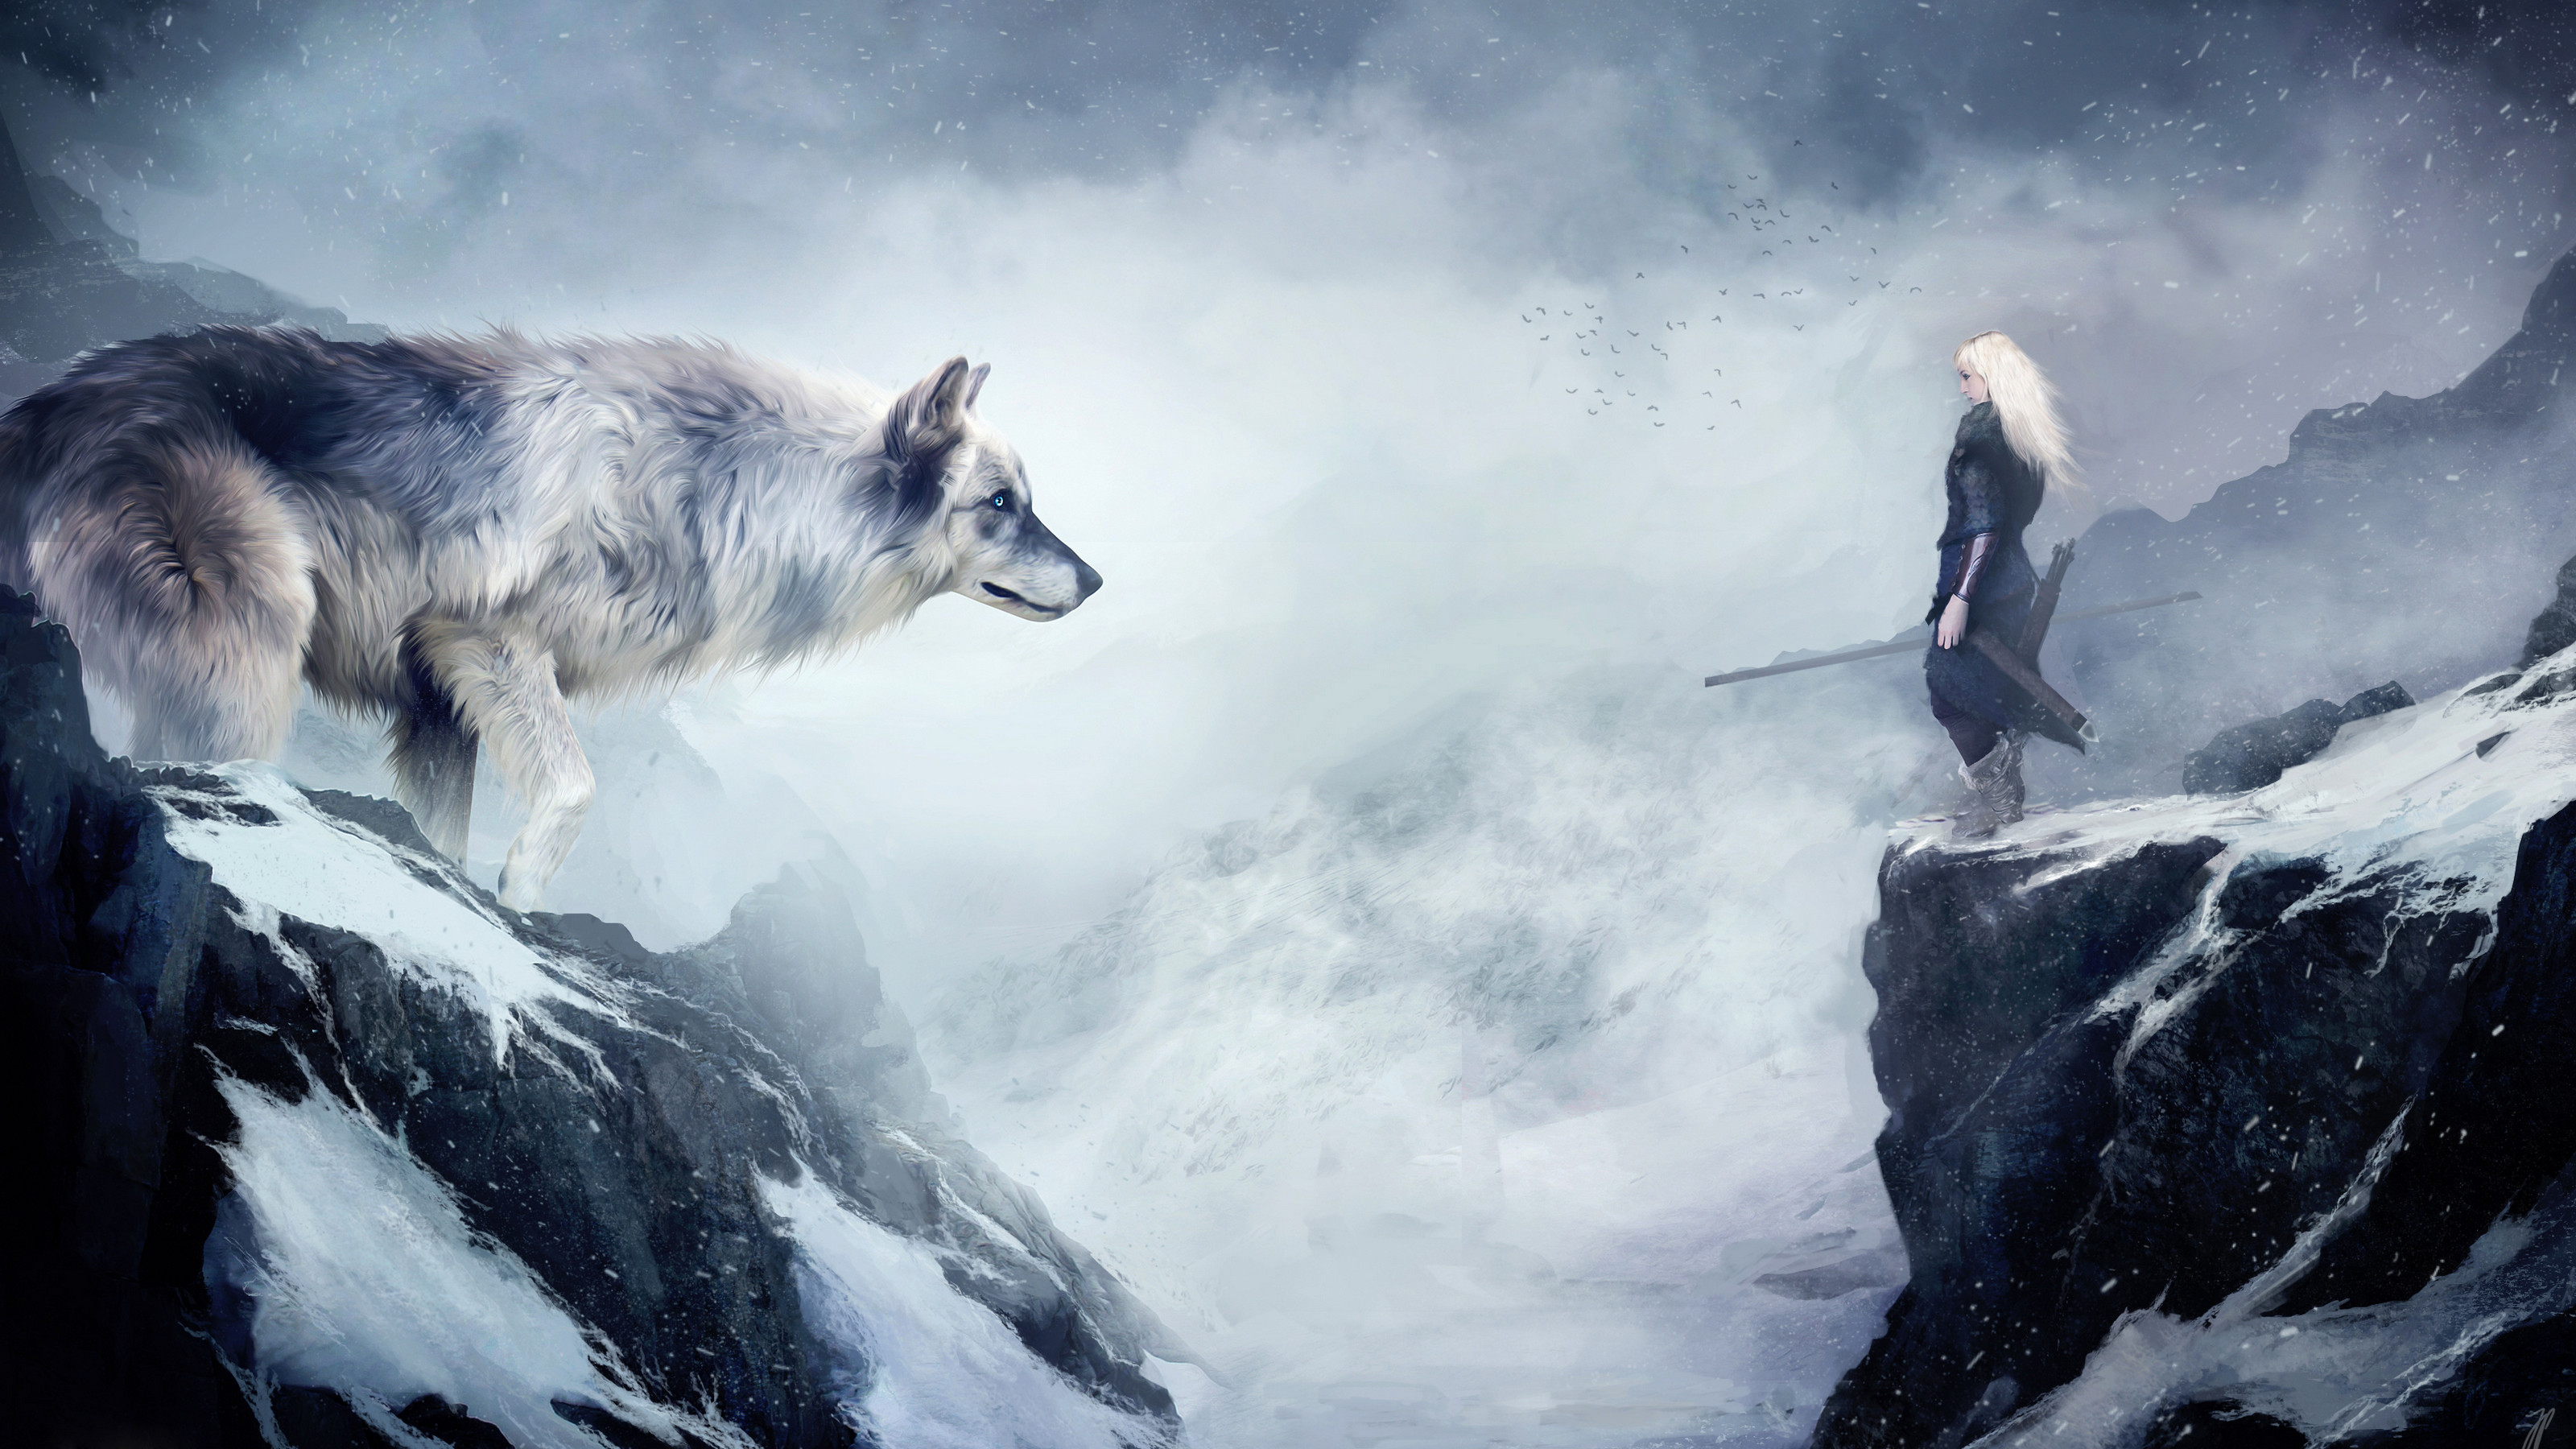 3200x1800 Fantasy - Wolf - Awesome - Beautiful - Fantasy - Animal Wallpaper